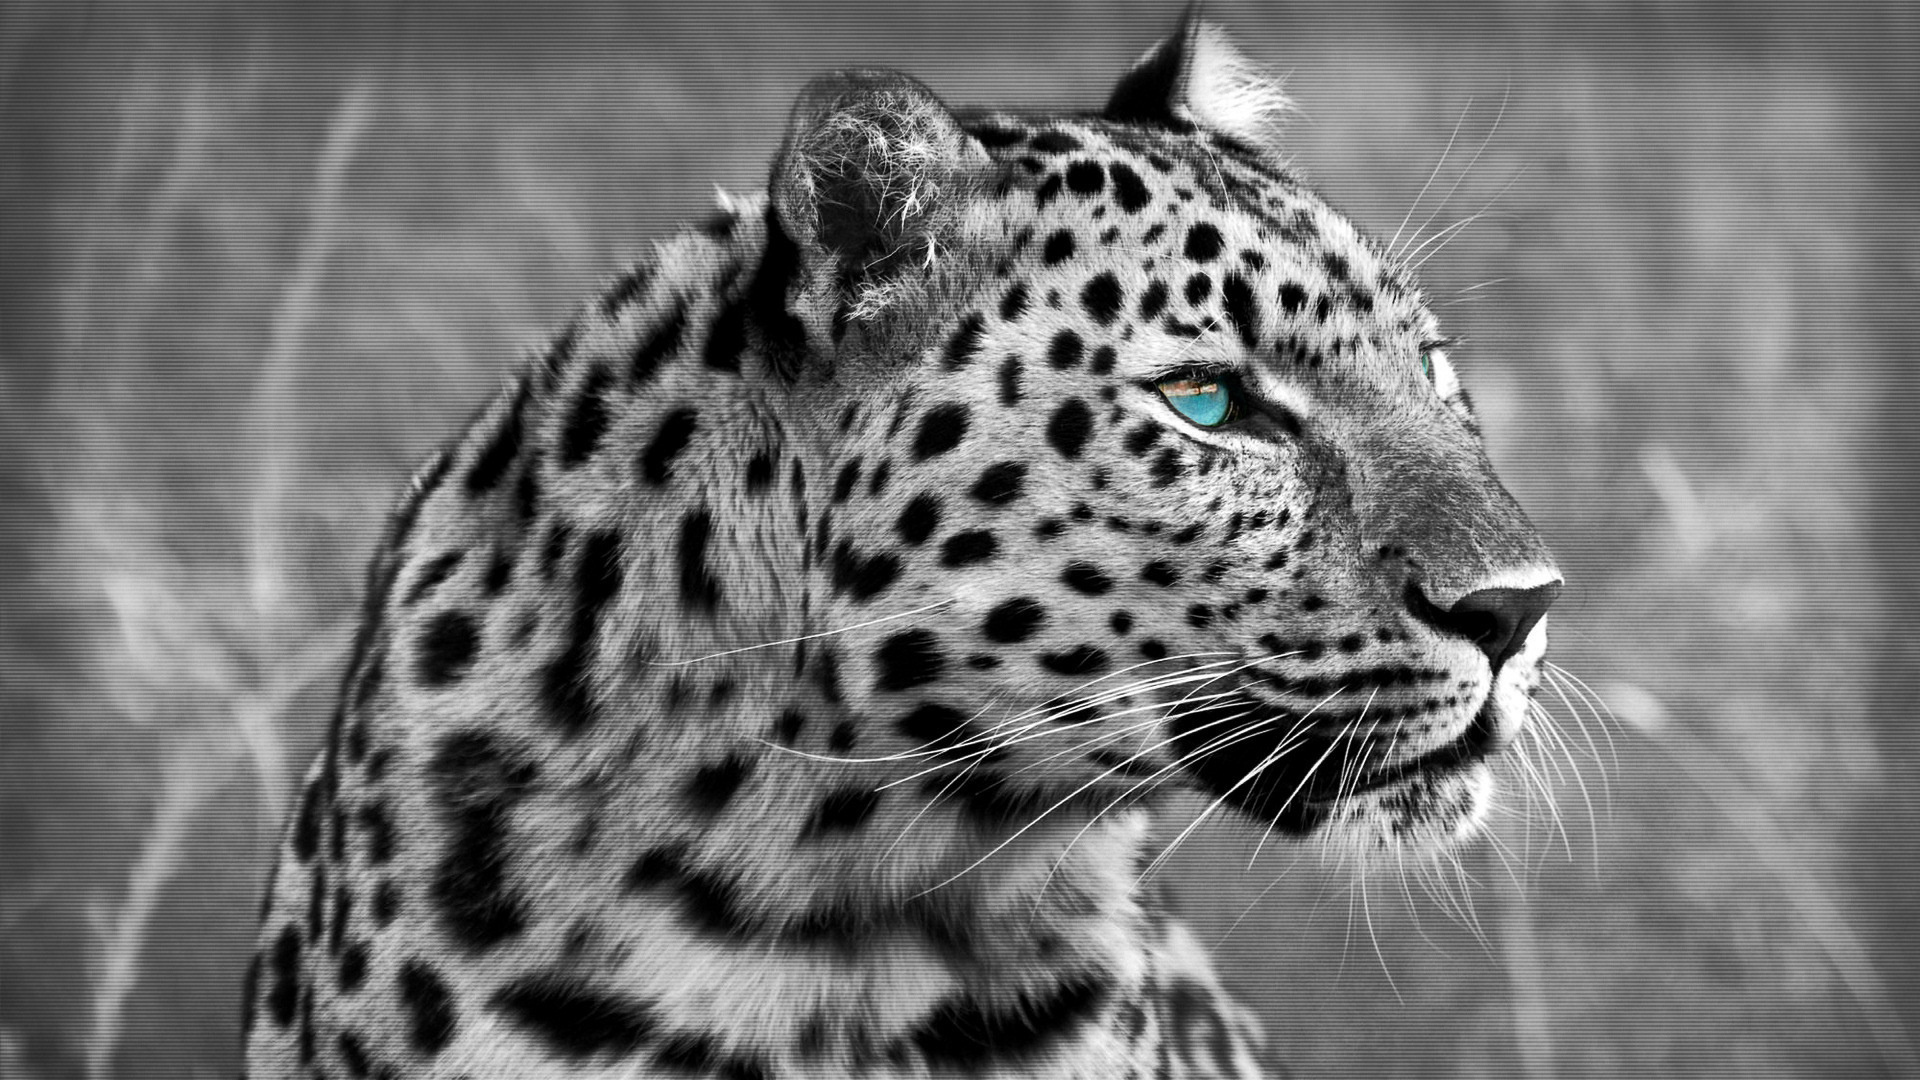 muzzle eyes wild cat leopard wallpaper | 1920x1080 | 120806